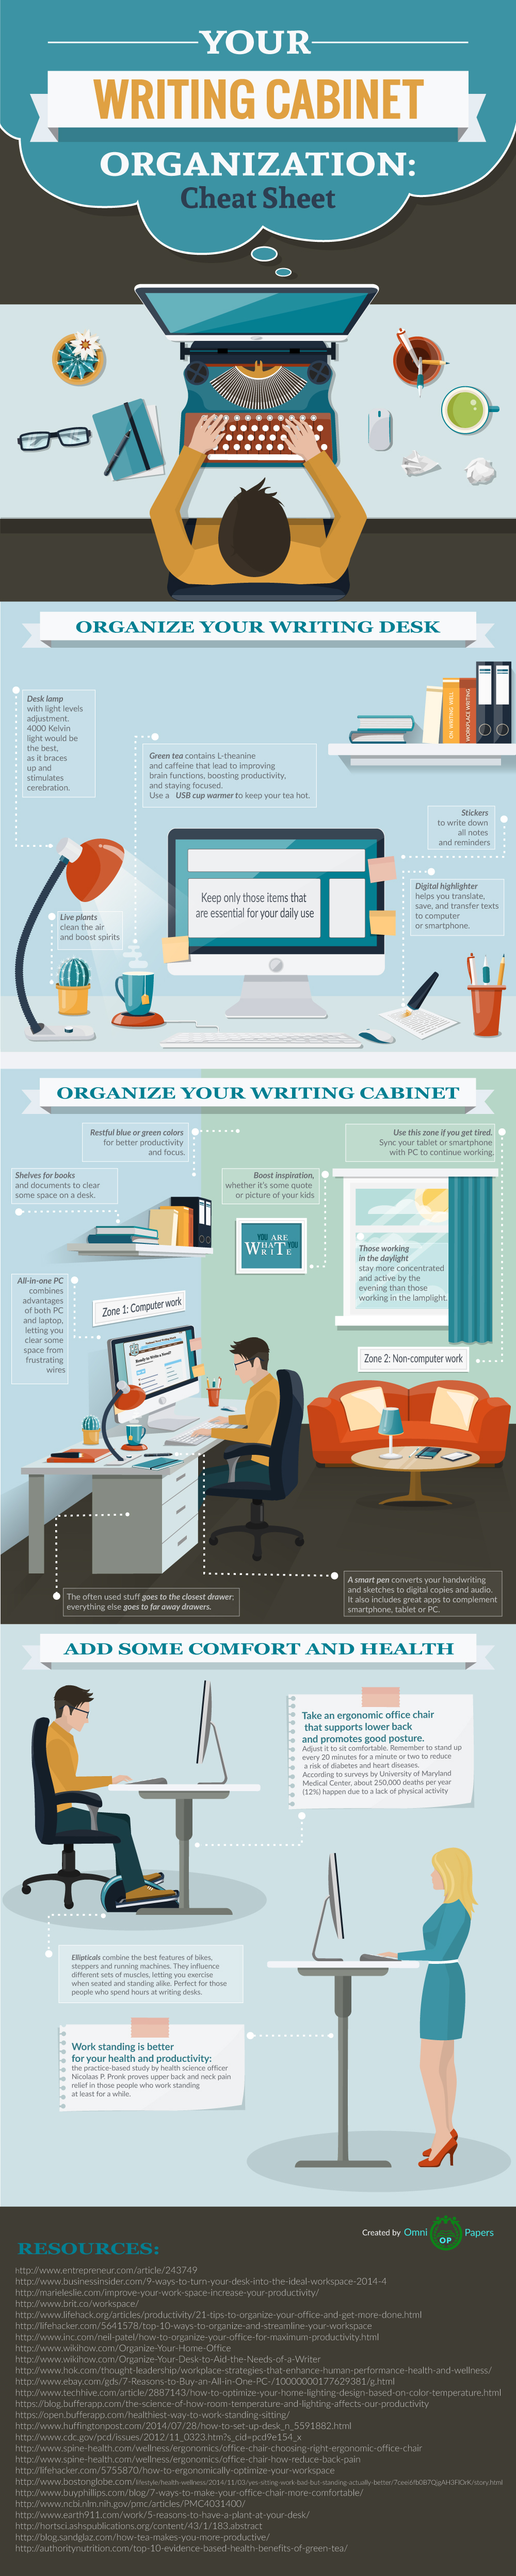 your-writing-cabinet-organization-2